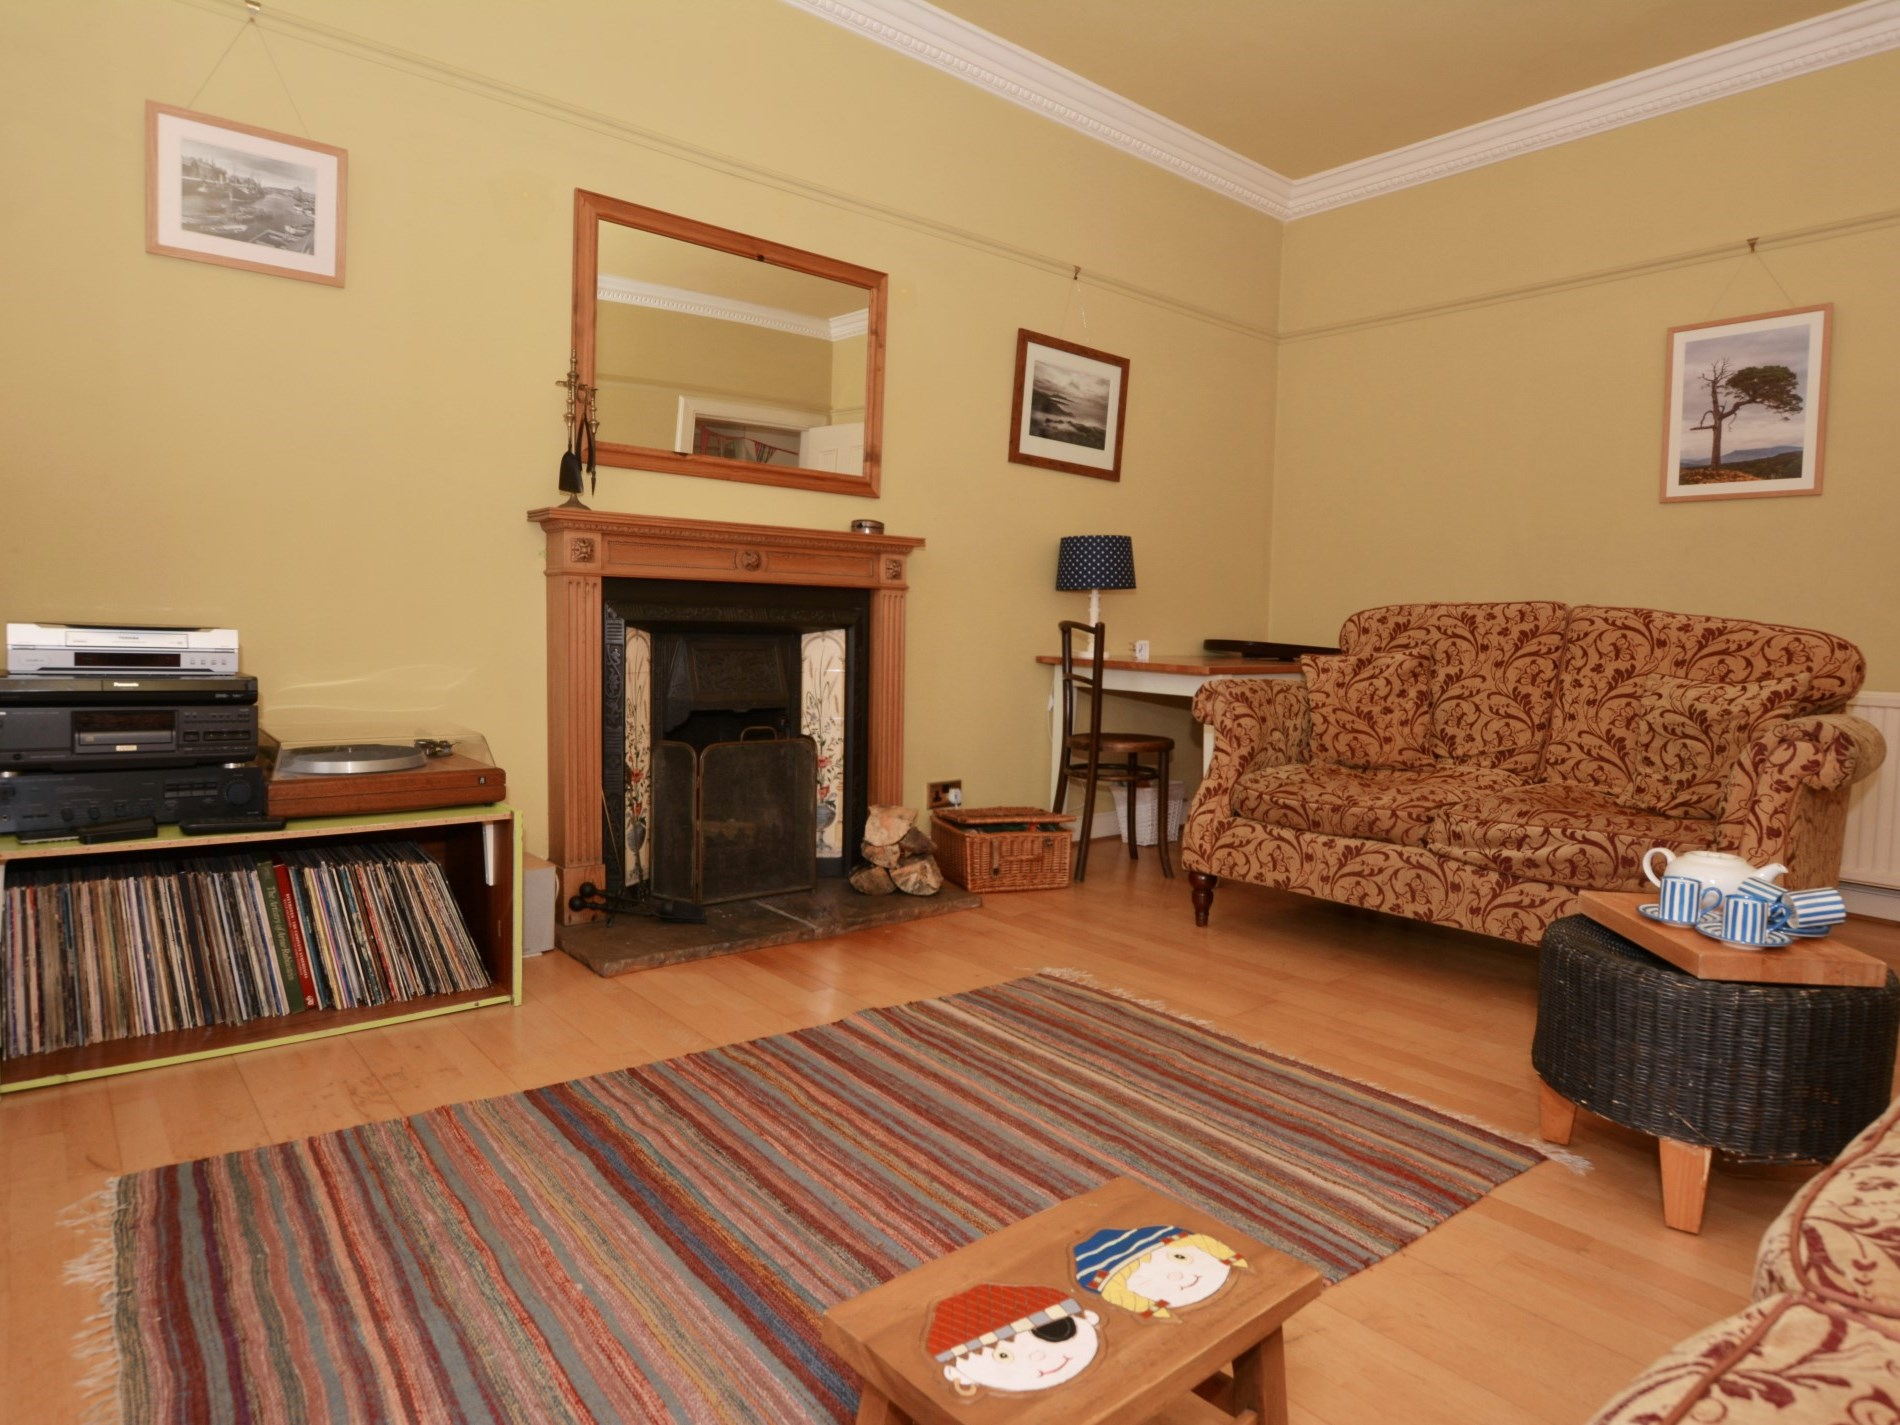 3 Bedroom Cottage in Eyemouth, Scottish Borders